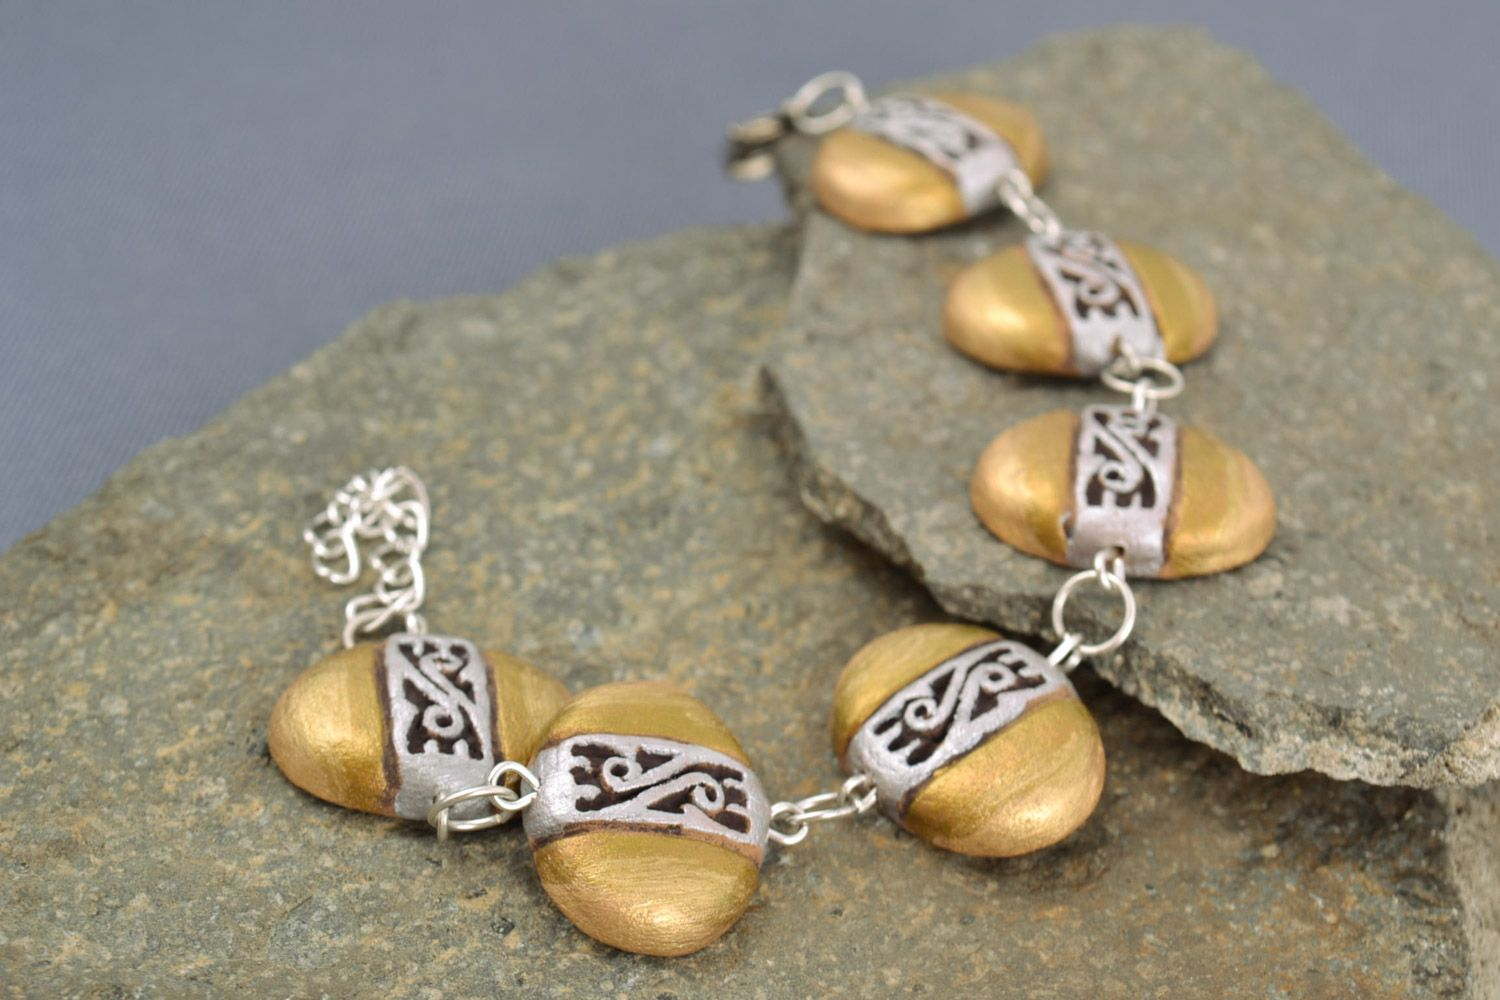 clay bracelets Handmade wrist bracelet on chain with ceramic beads painted with golden acrylics - MADEheart.com